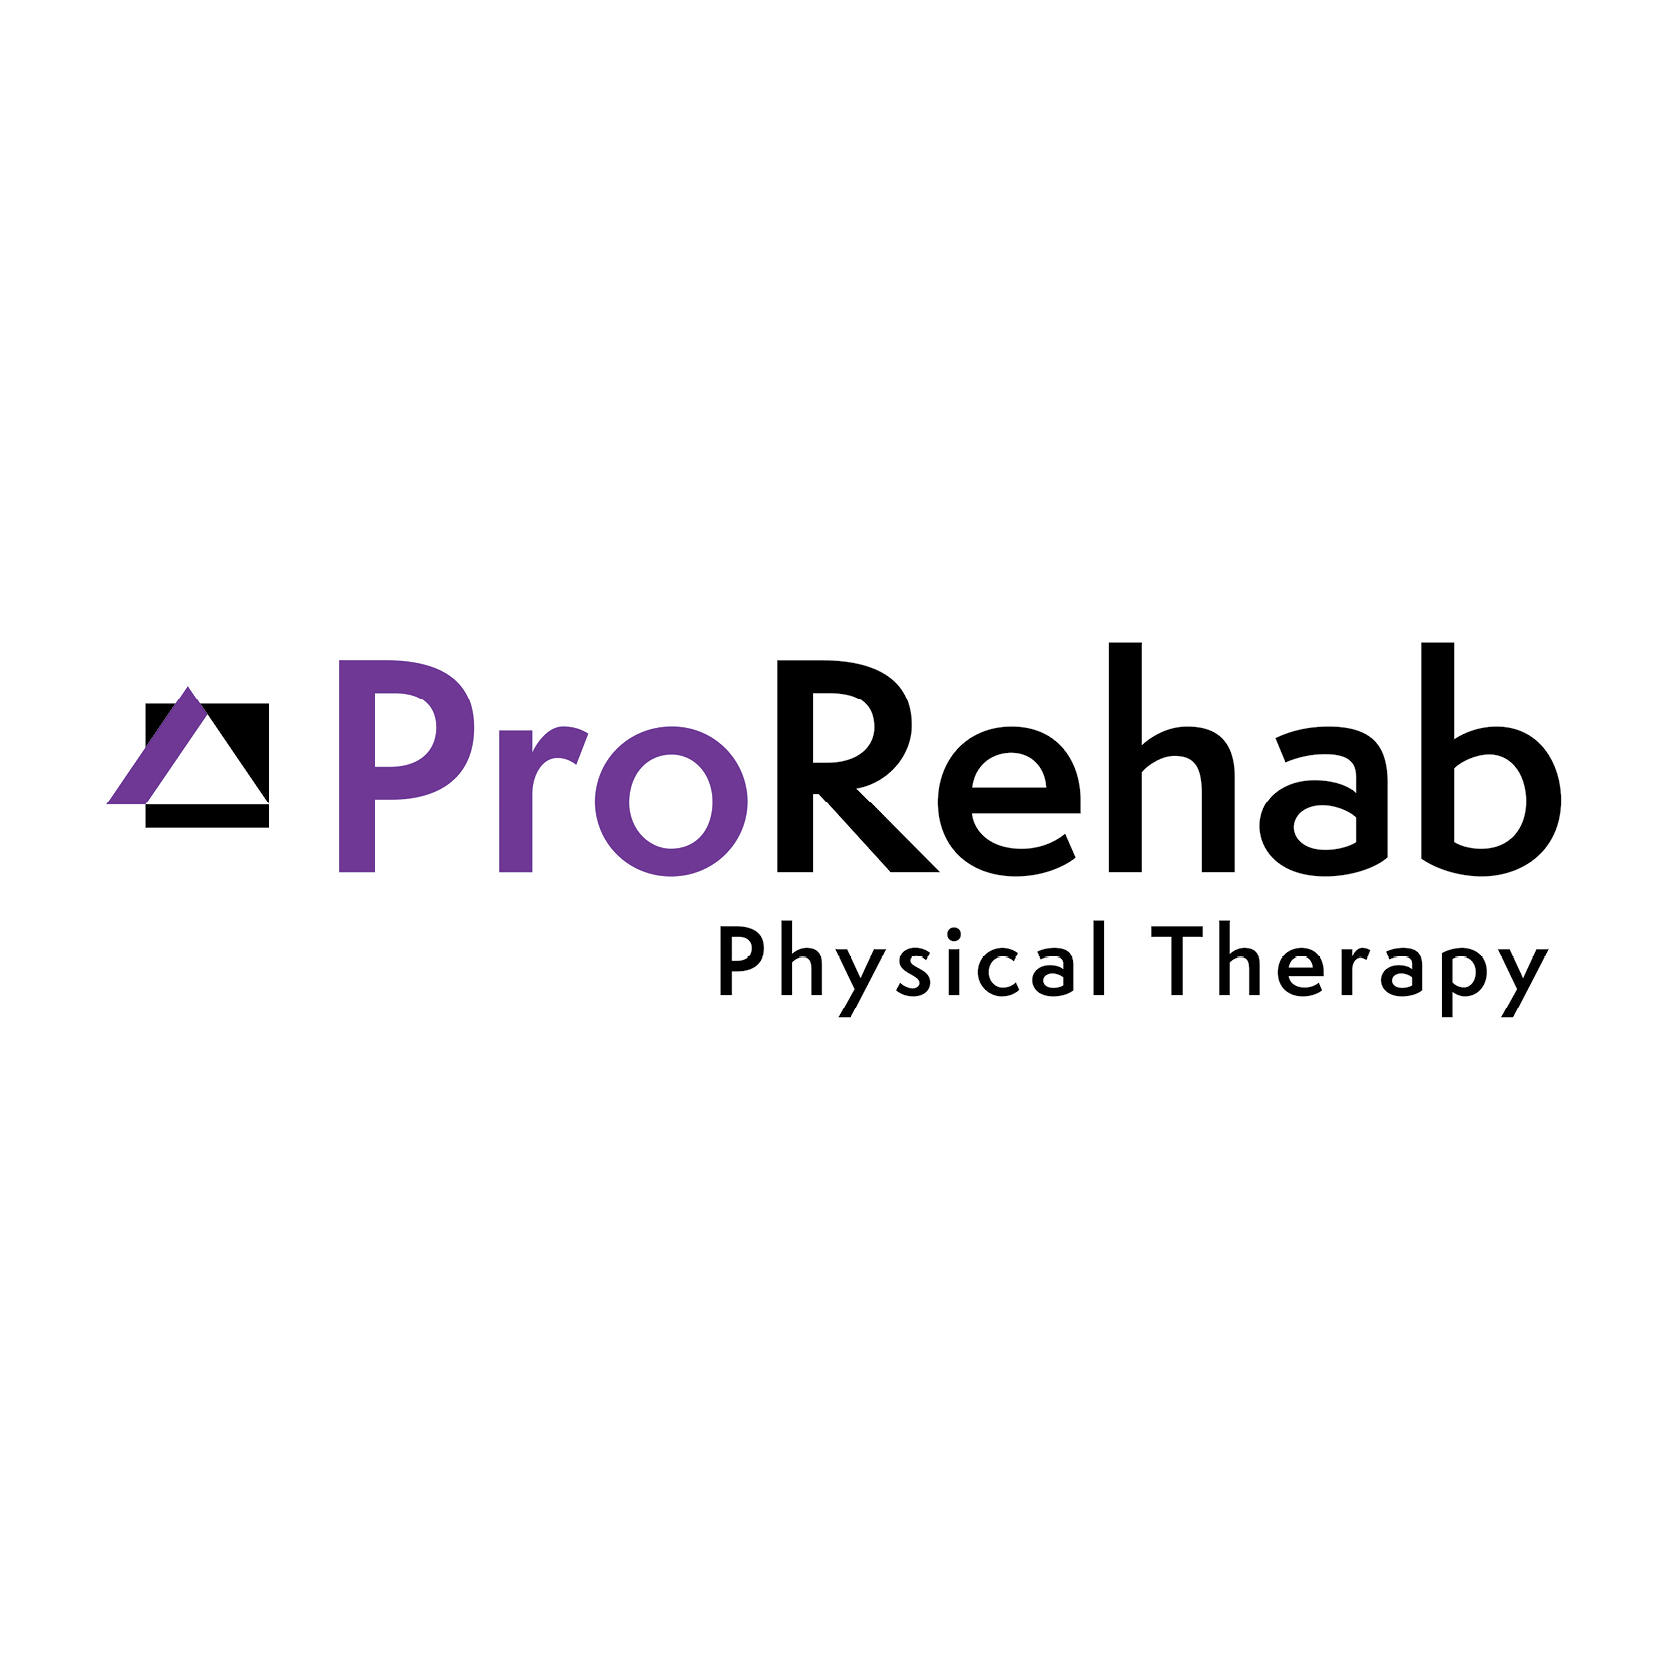 ProRehab Physical Therapy